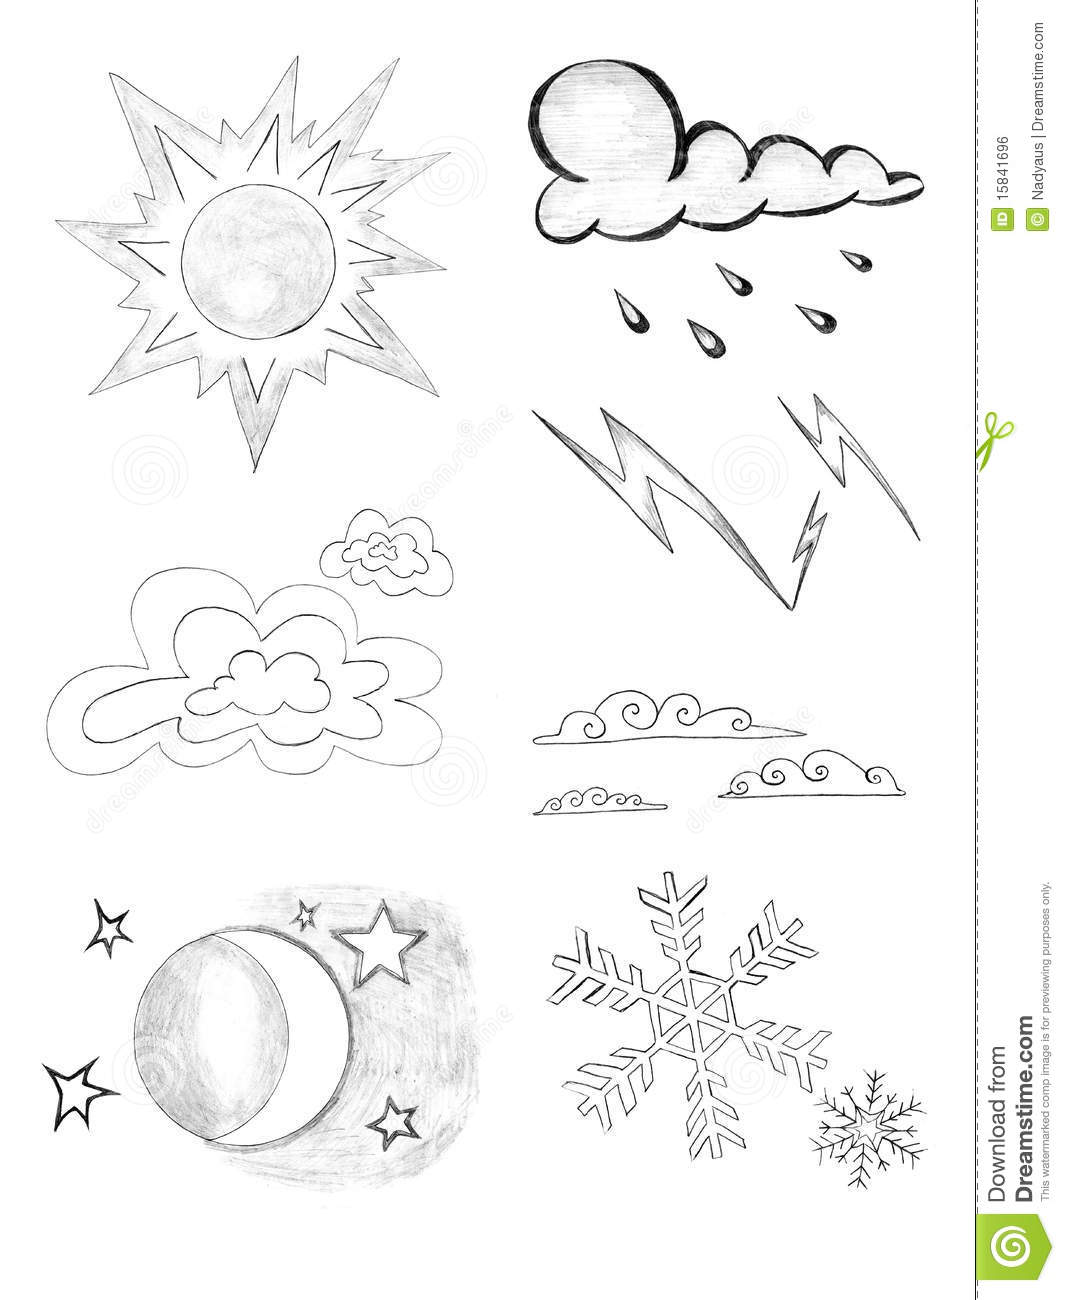 TM 9 2350 256 34 2 104 moreover Clock likewise TM 5 3895 374 24 2 144 moreover ponents Of Mud Pump further Bicycle chain clipart. on gear design drawing